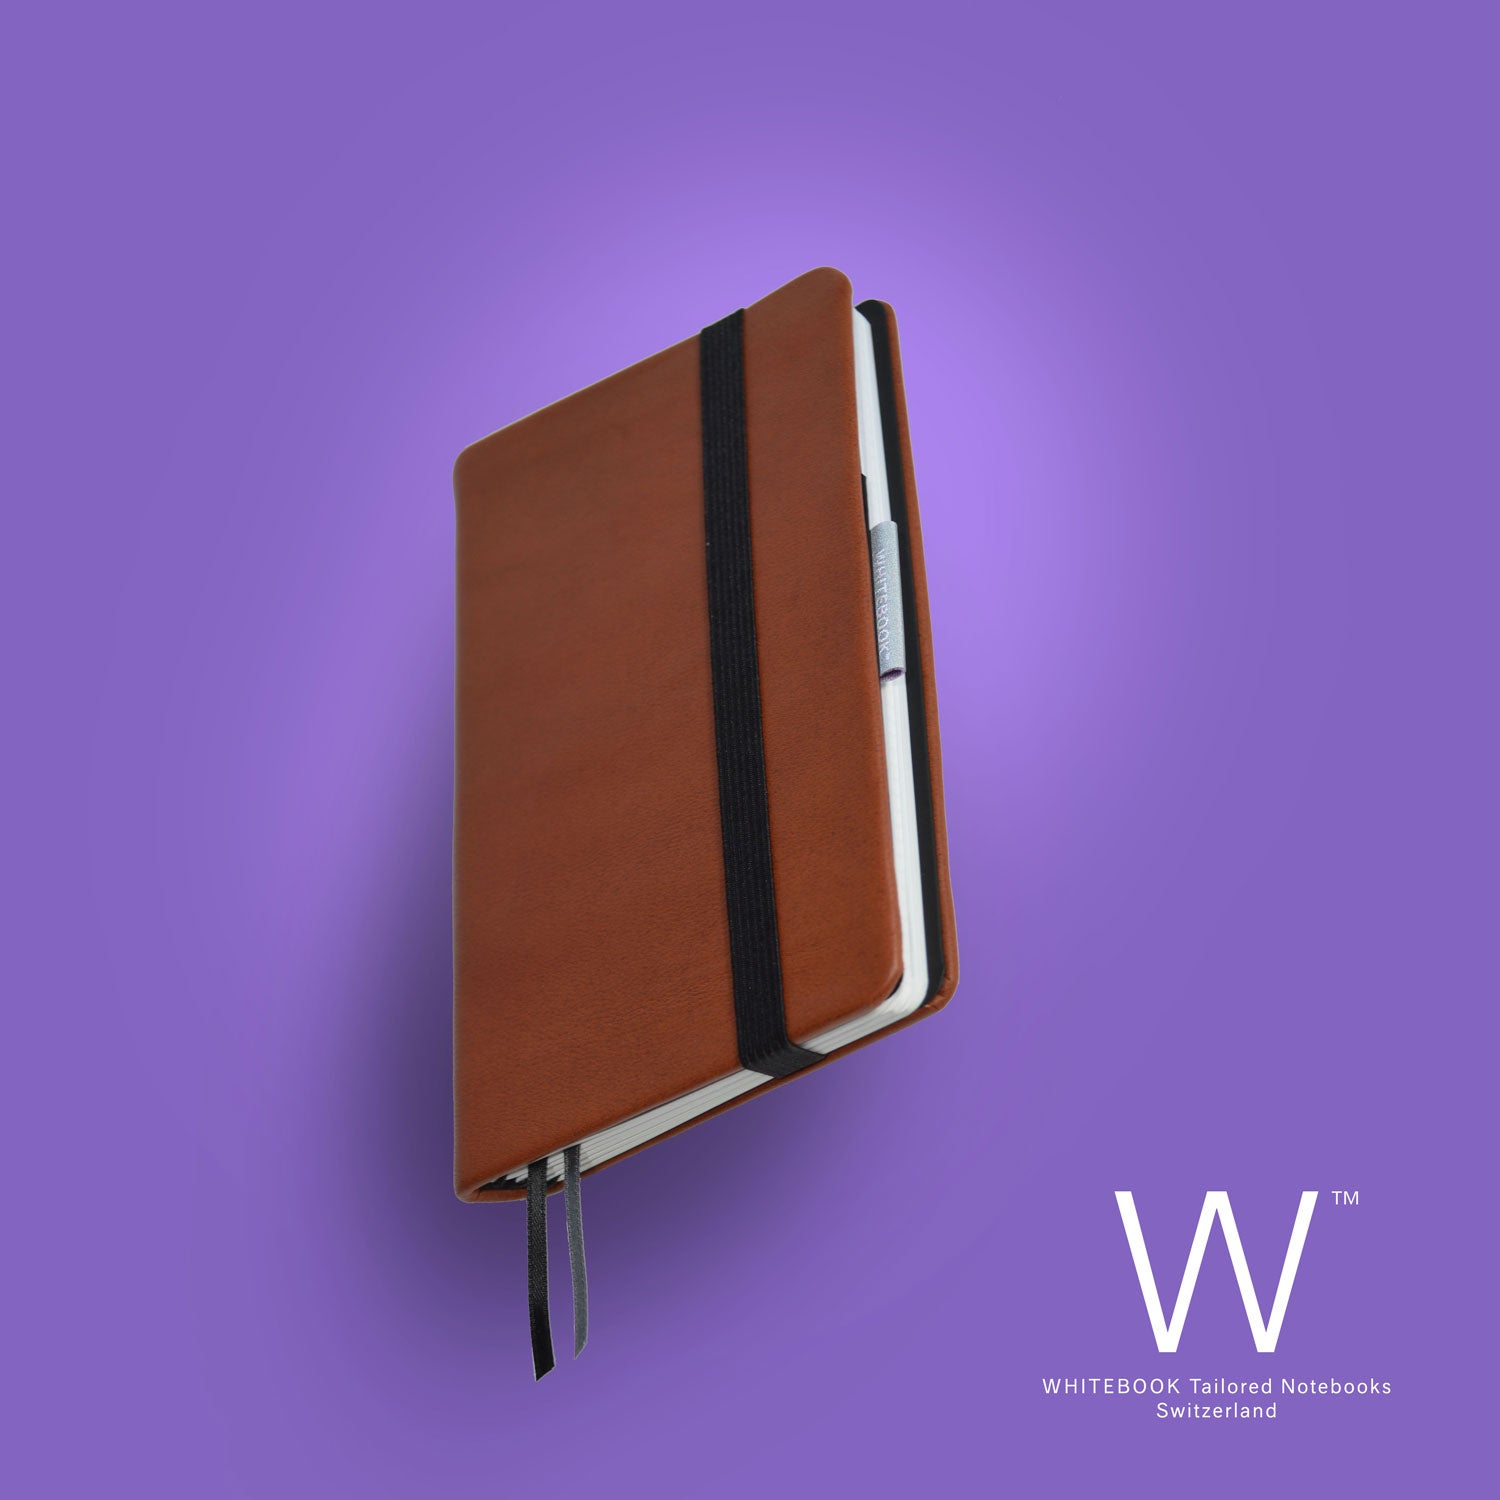 Image of Whitebook Mobile Premium, P167, calf nappa leather, welt-sewn, LV cognac imperial